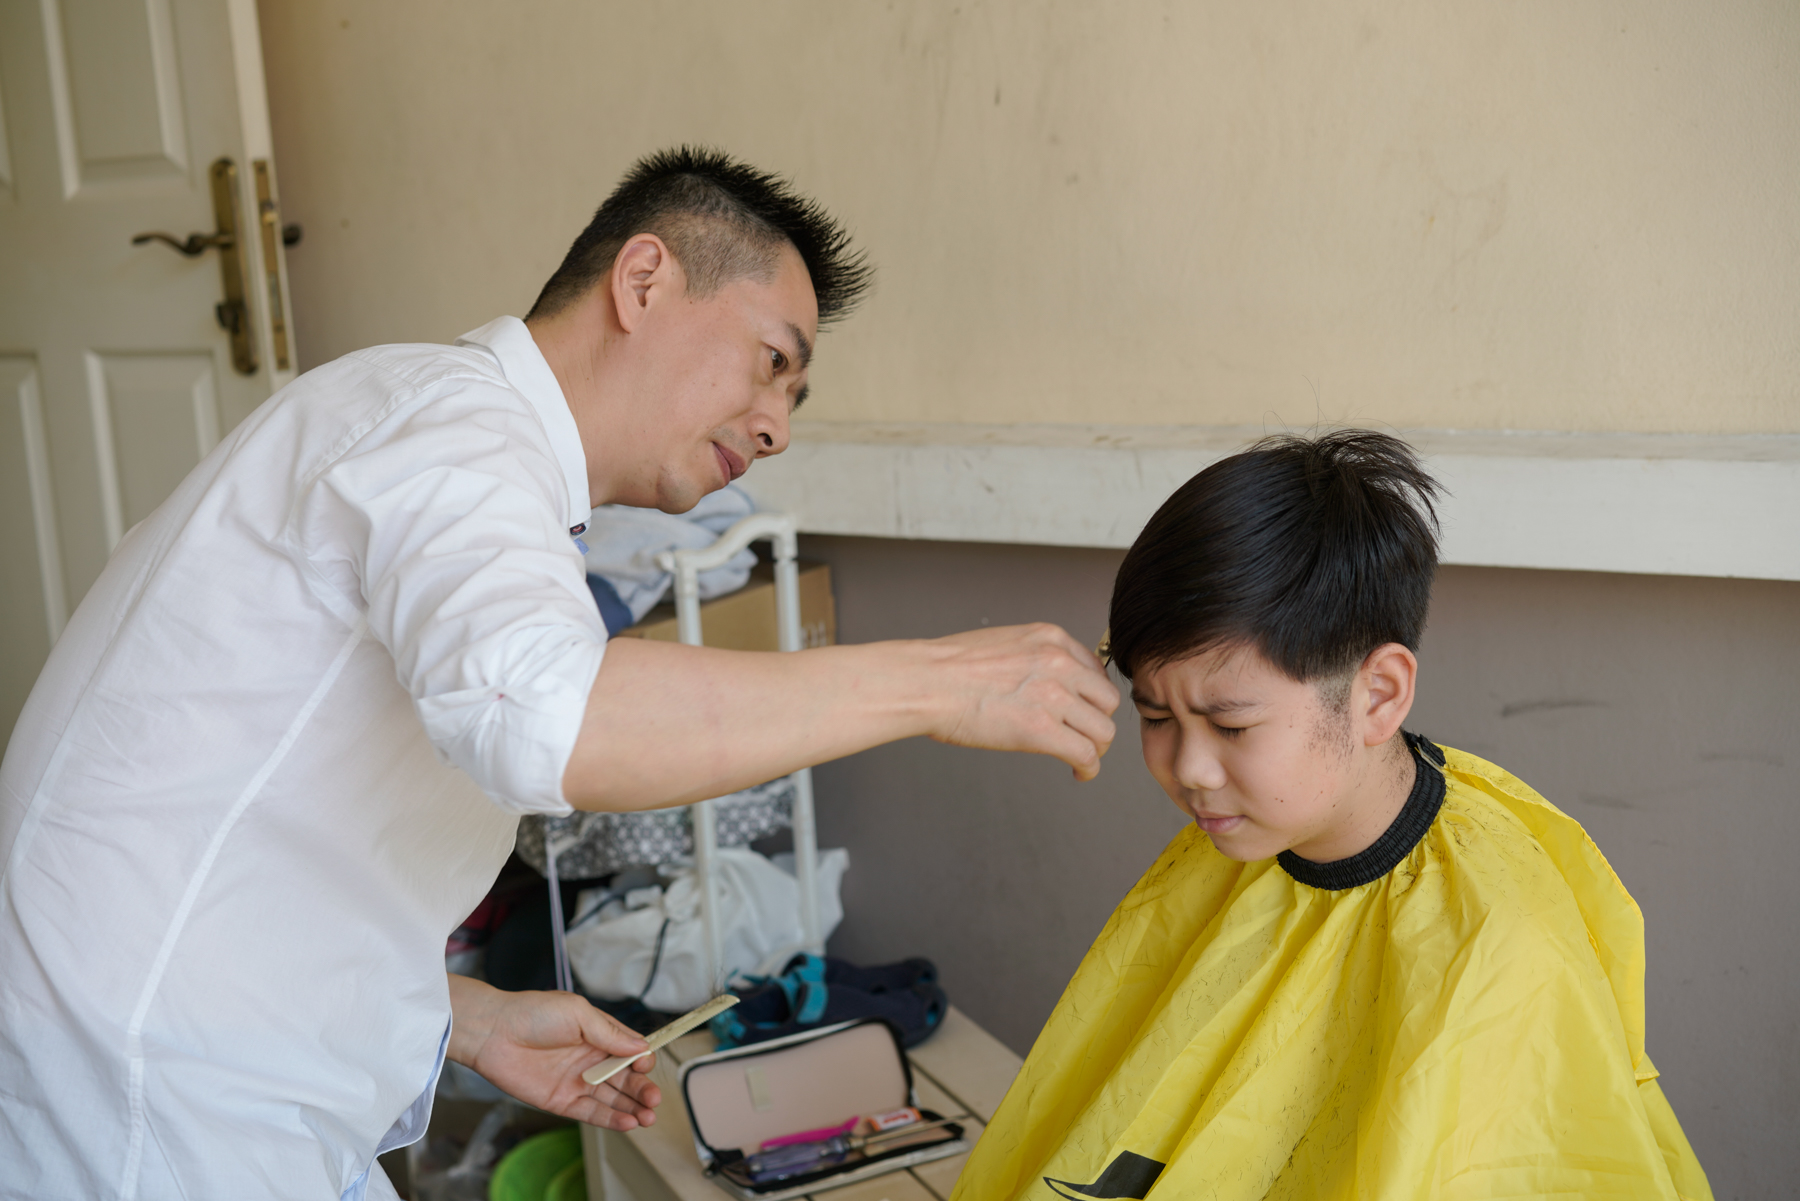 Zou Yanhu's father, Zou Peng, gives him a haircut, January 19, 2019. Zou teaches product design at a university in Chengdu and visits the family in Chiang Mai whenever he has a vacation.